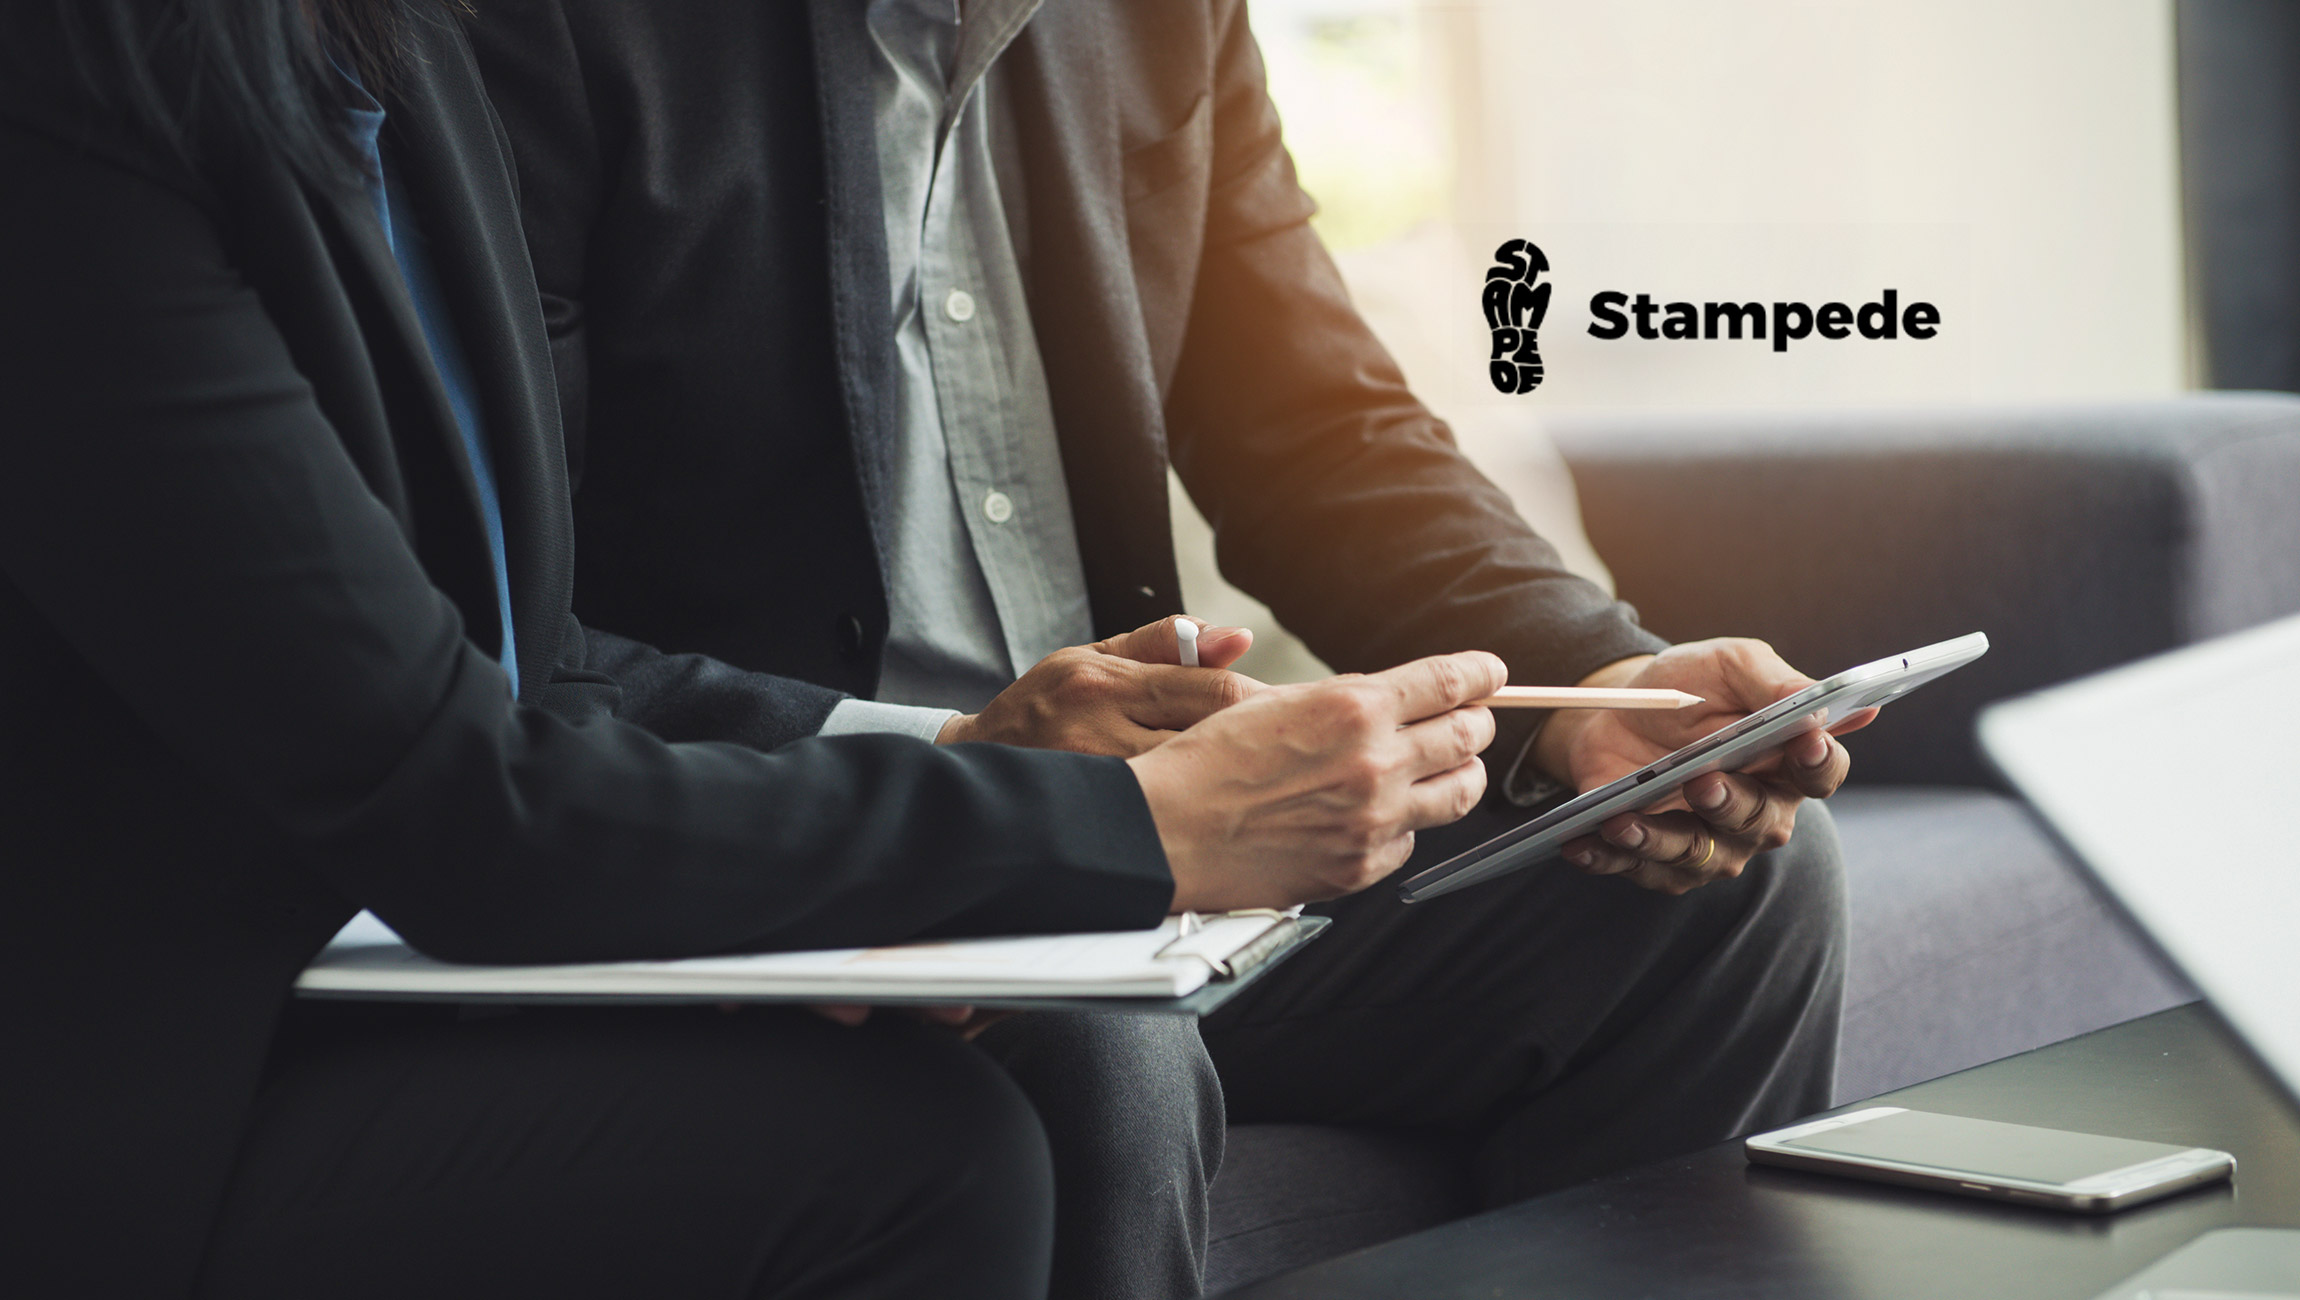 Stampede Launches With £1m Seed Funding, to Become an Essential Service for the Hospitality Sector